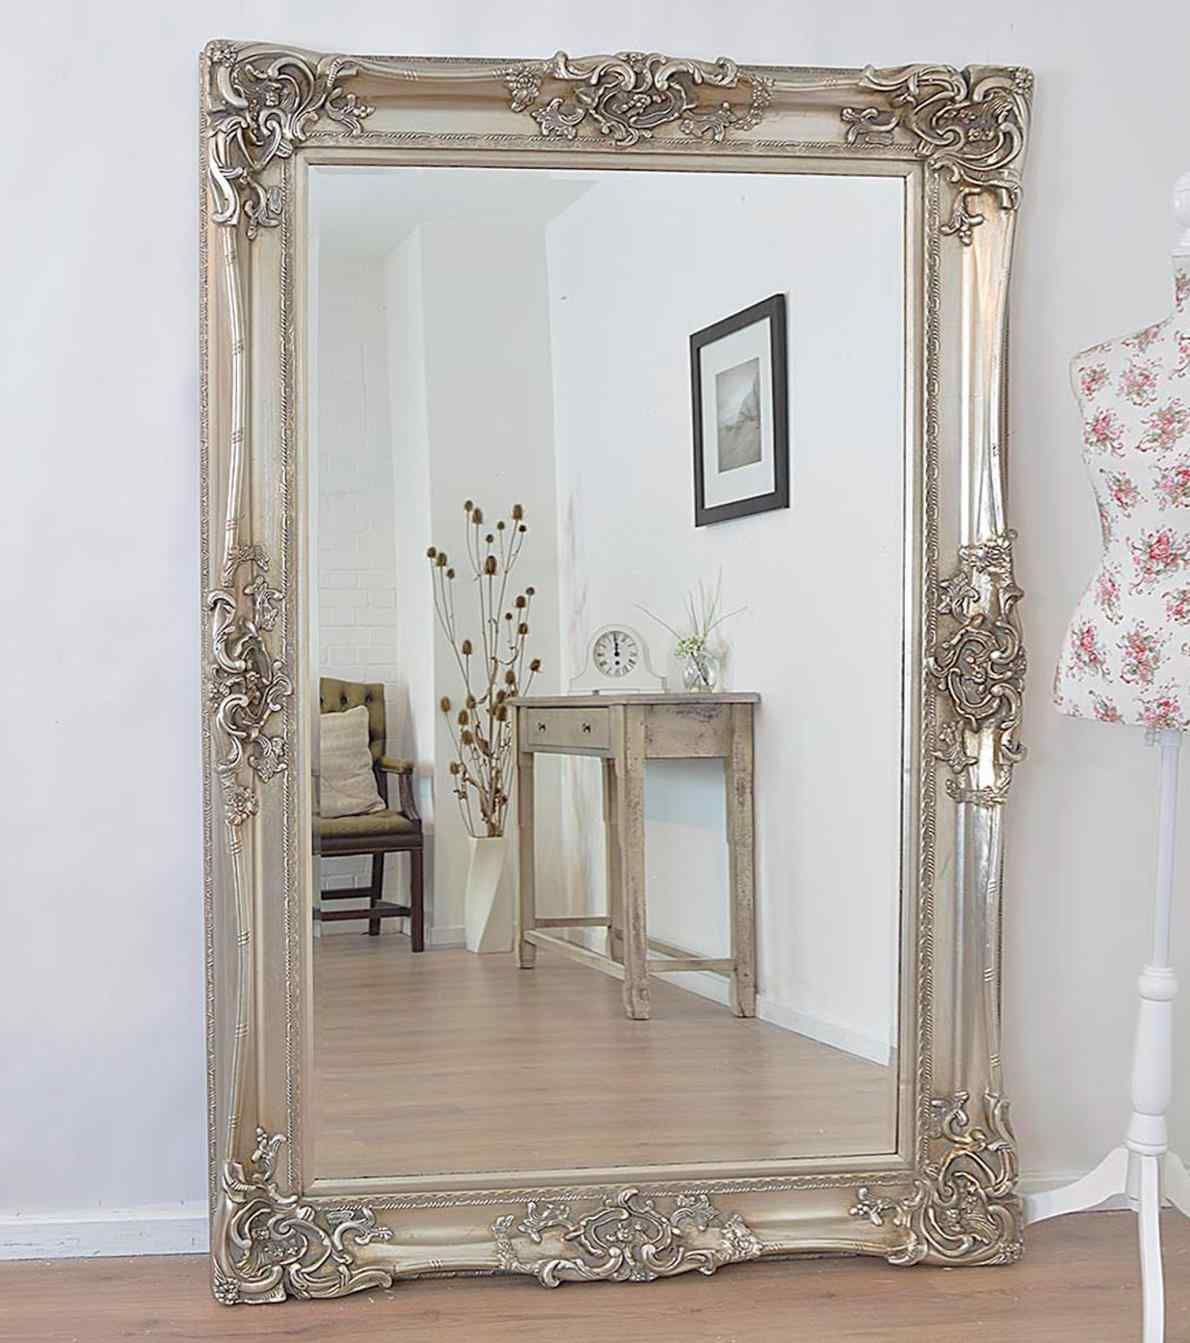 Incredible 14 Amazing Big Fancy Mirrors Design For Your Home Mirror Wall Living Room Mirror Wall Bedroom Fancy Mirrors